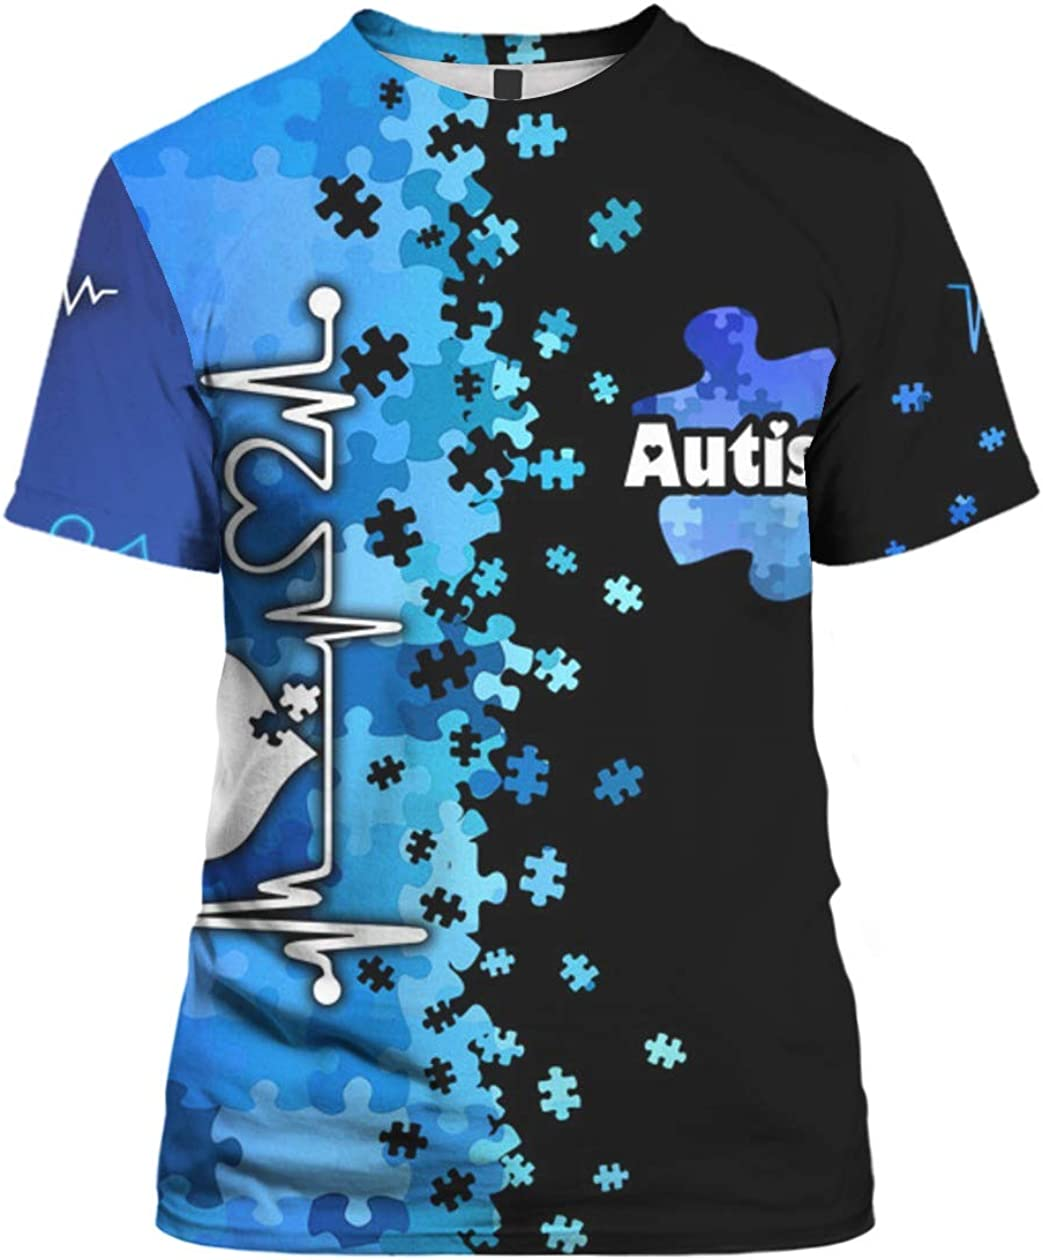 Autism Awareness Blue Heartbeat 3D All Over Sublimation Printing Shirt